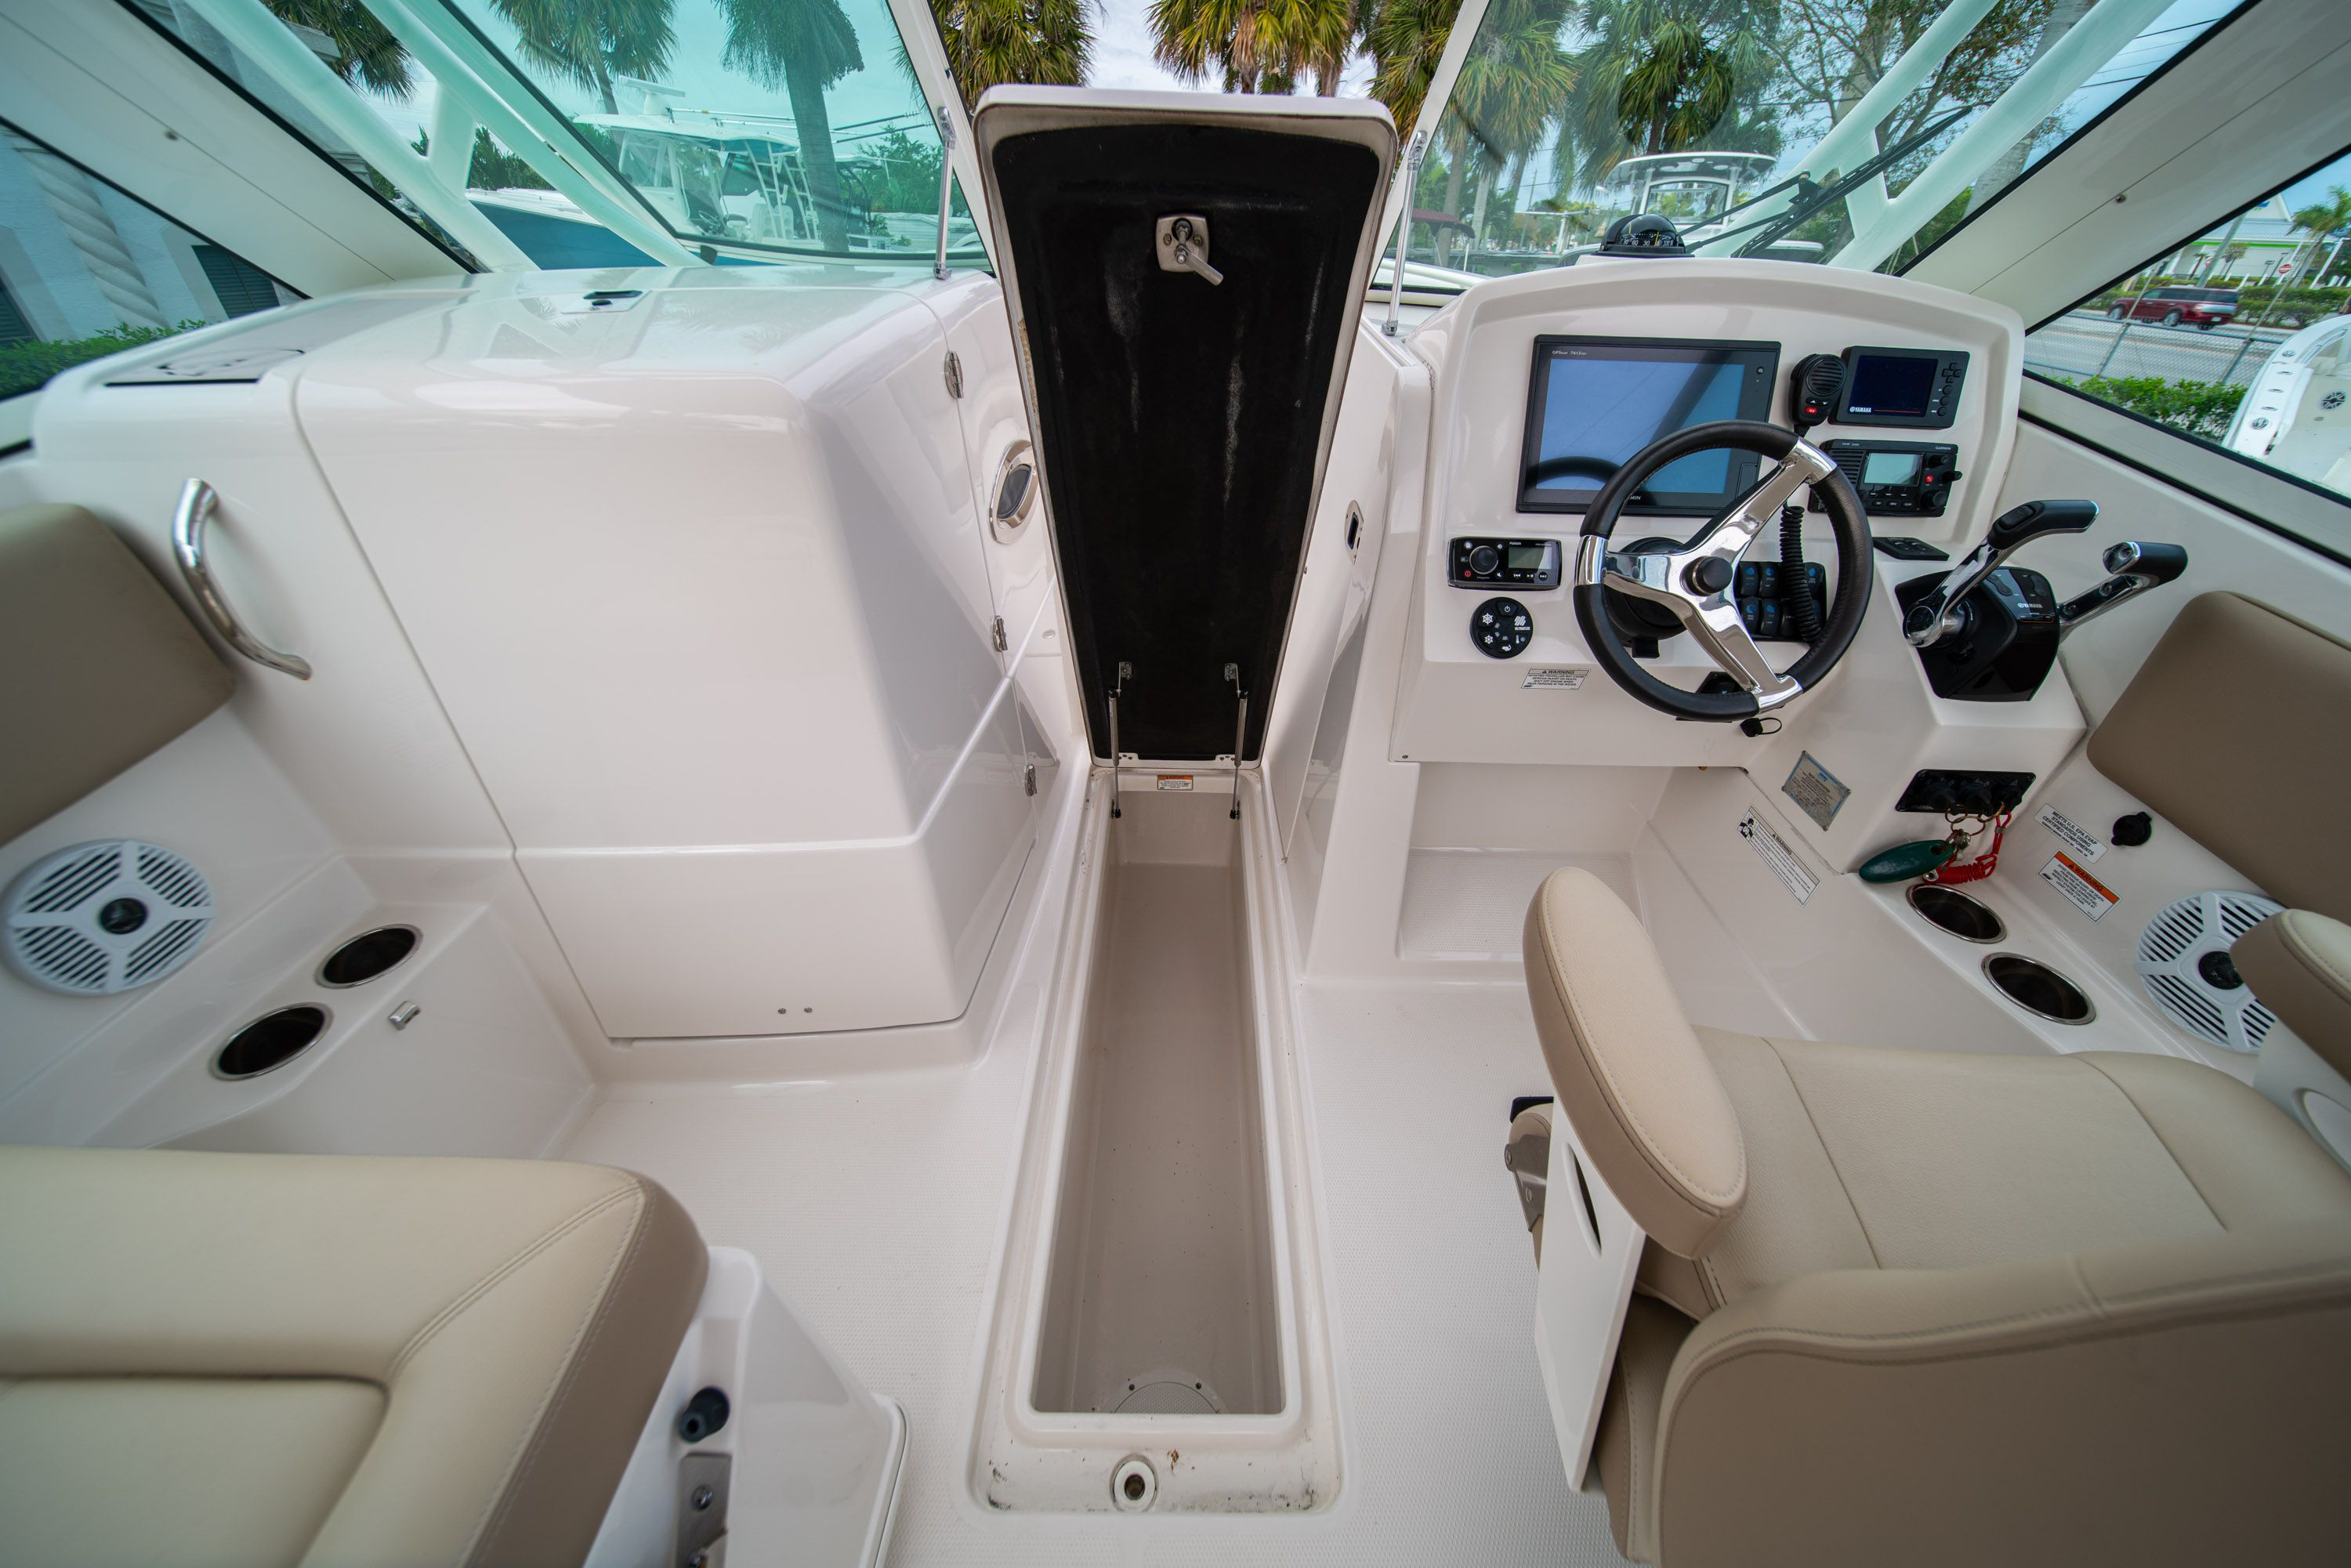 Thumbnail 47 for Used 2017 Sailfish 275 Dual Console boat for sale in West Palm Beach, FL